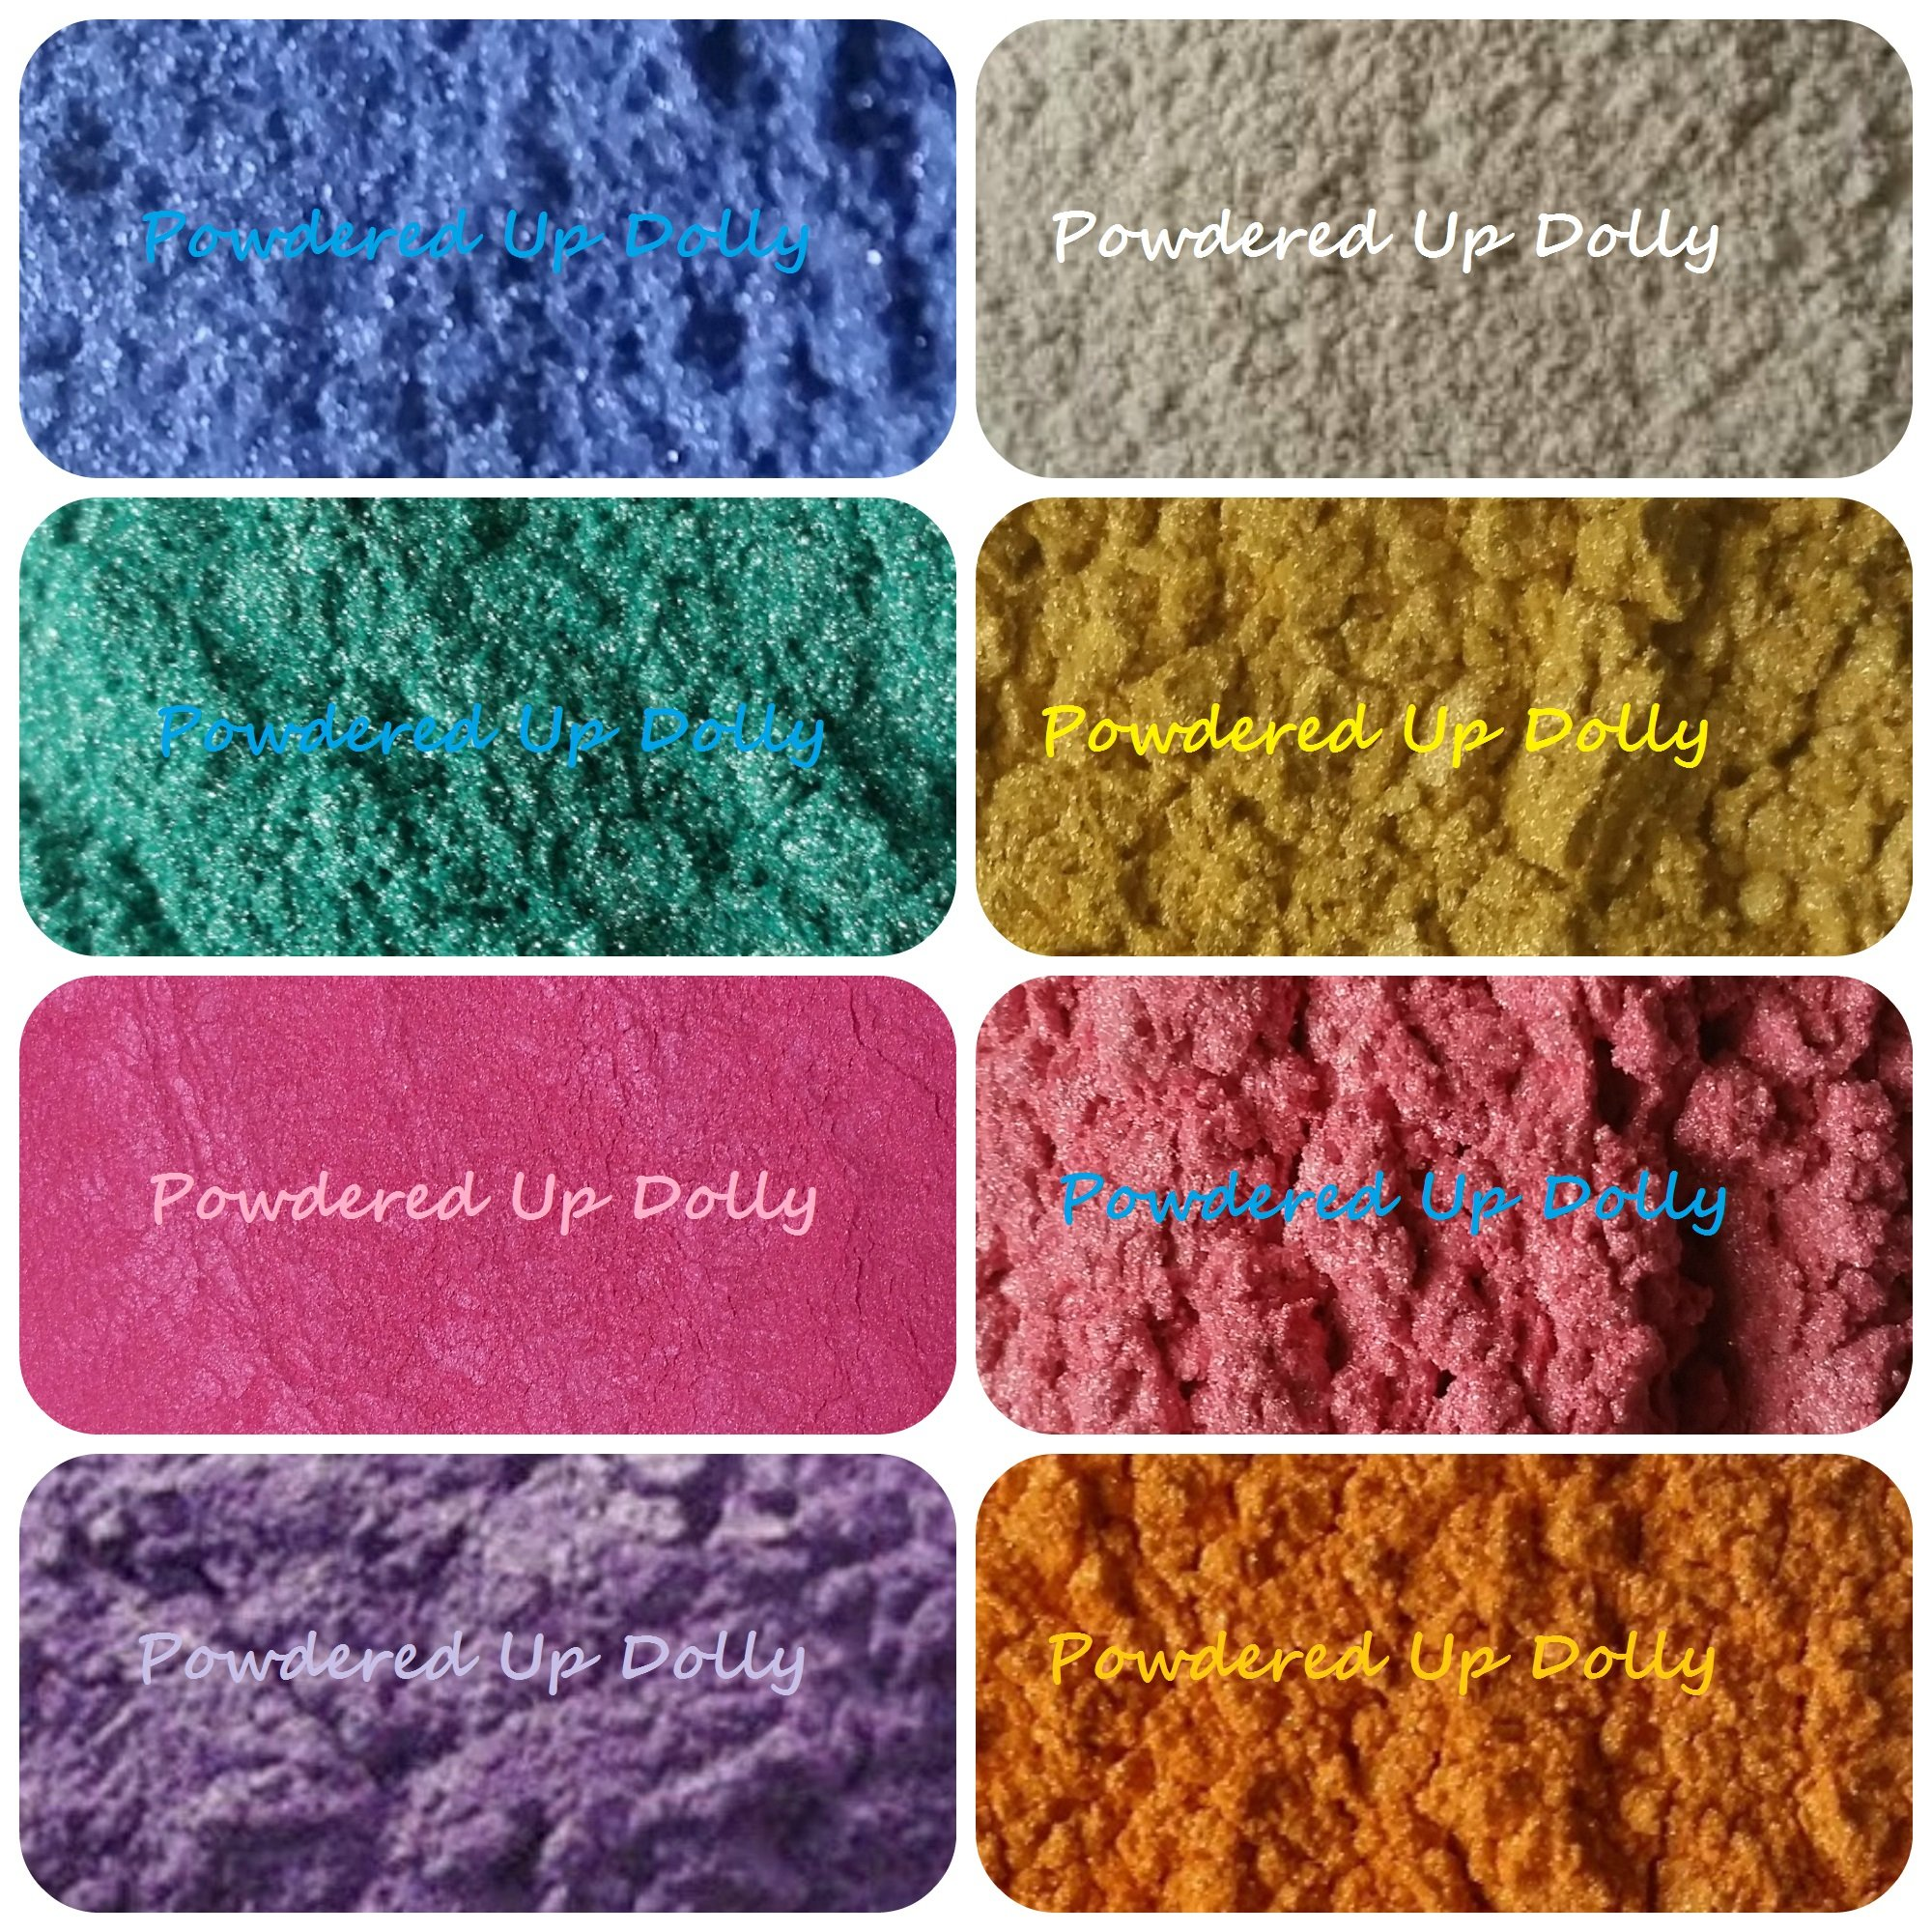 160 Grams Mica Colorants Lot of 8 Cosmetic 20g Each Soap & Craft Color Pigment Powders BLUE White TEAL Gold FUSCHIA HOT PINK MAGENTA Pink PURPLE Orange in Bag Set by Powdered Up Dolly (Image #1)